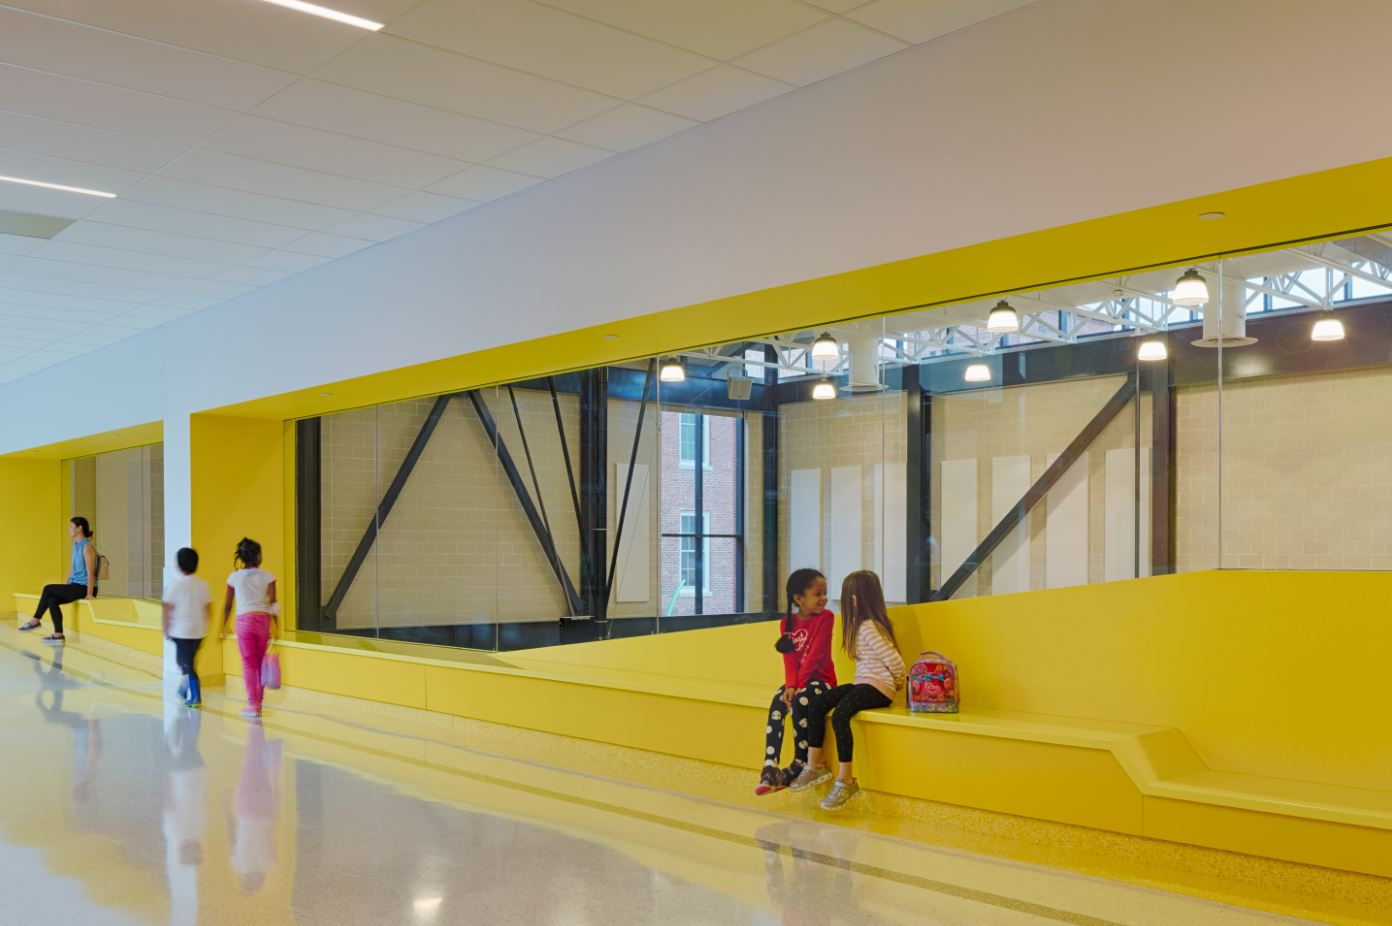 In an Instagram post by one of Bancroft's architects, Brian Gruetzmacher, he states that the bench overlooking the gym was designed to work for all ages from toddlers to adults.